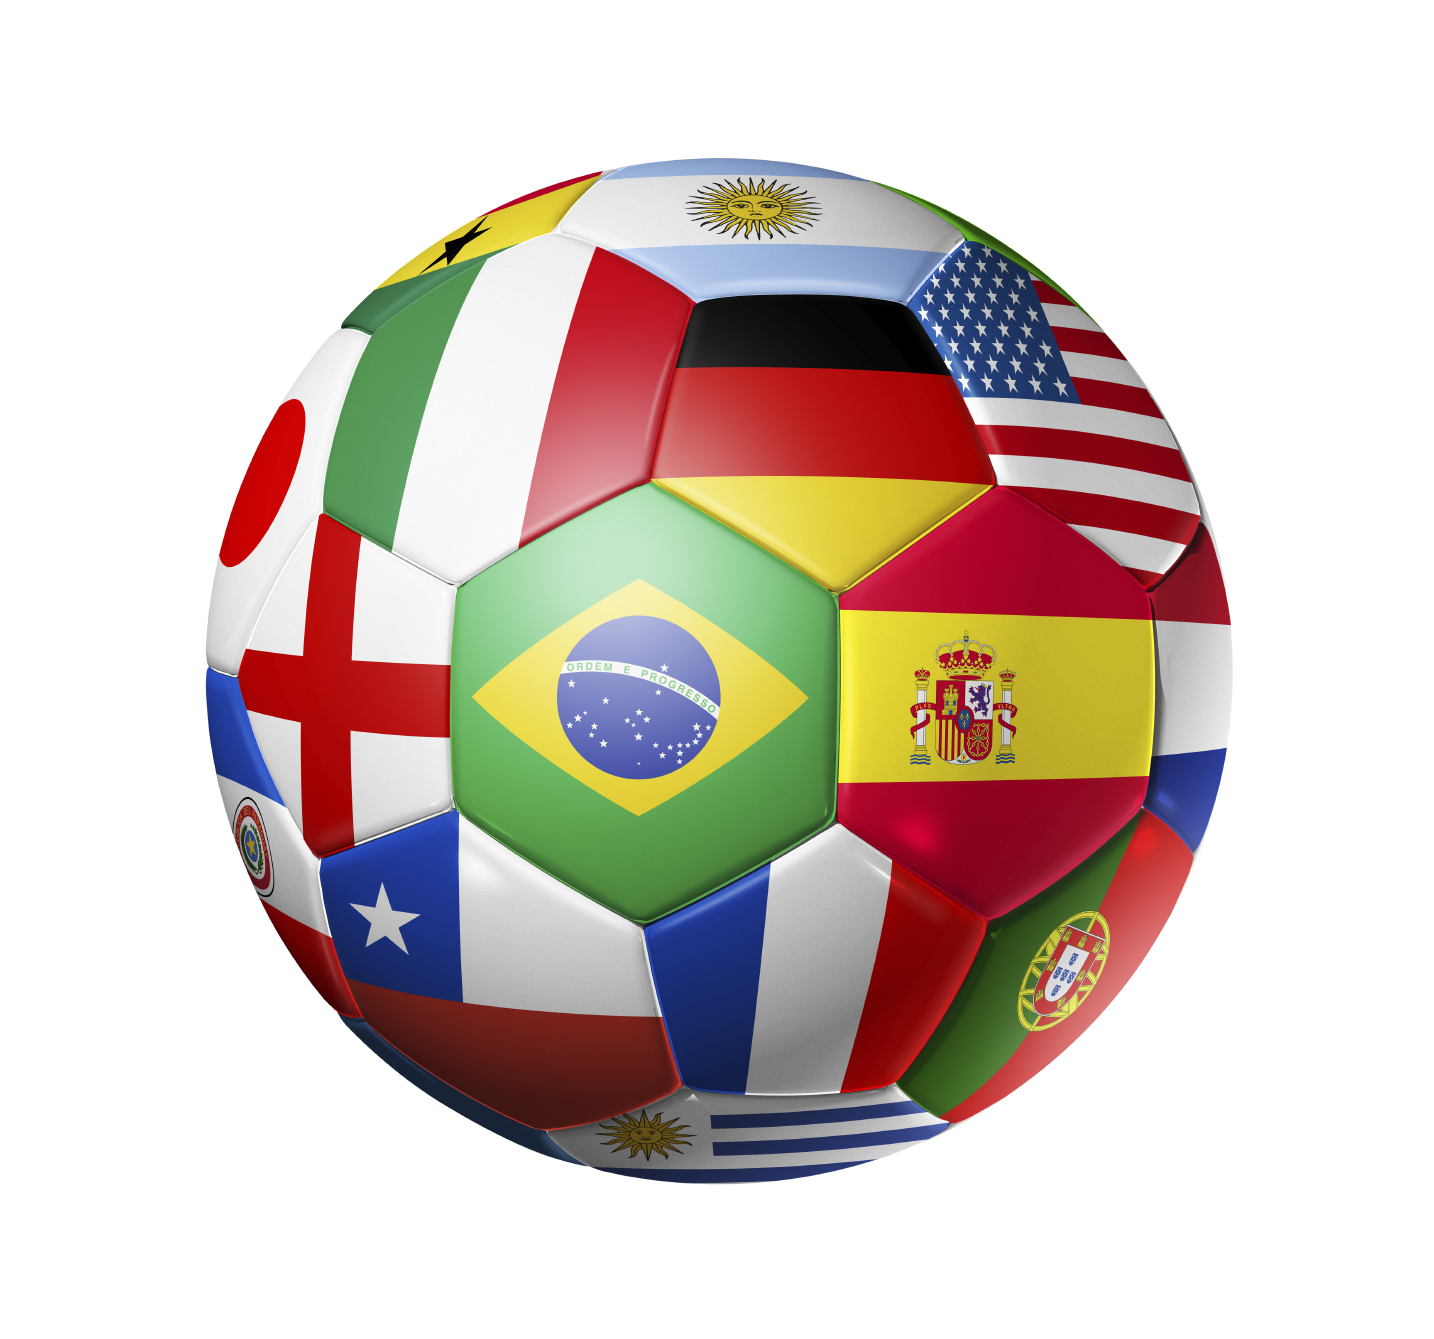 2014 World Cup Ball Of Flags